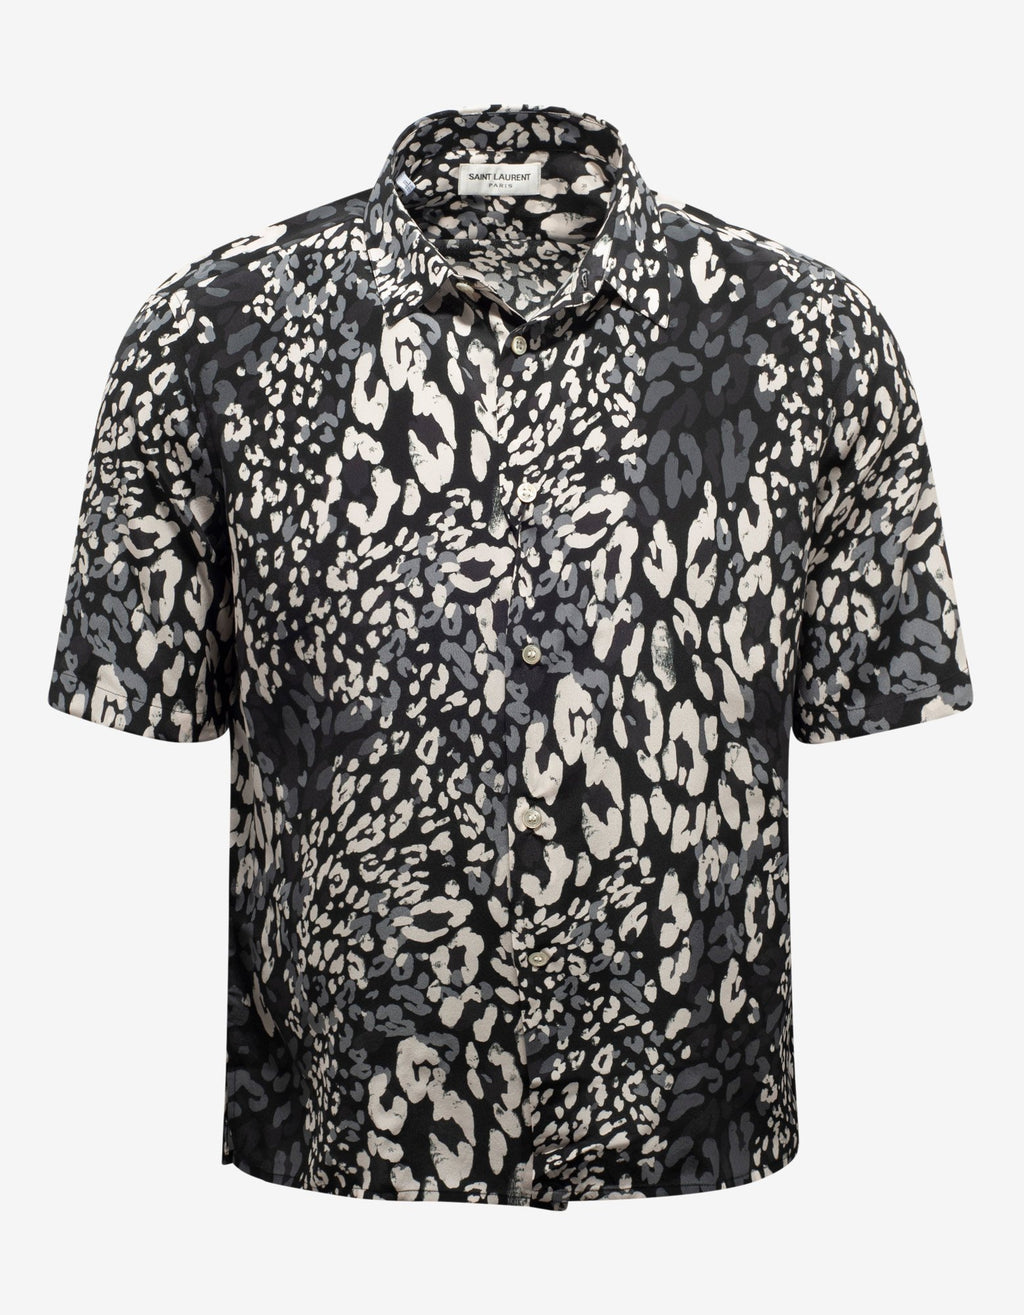 Black Leopard Print Silk Shirt -